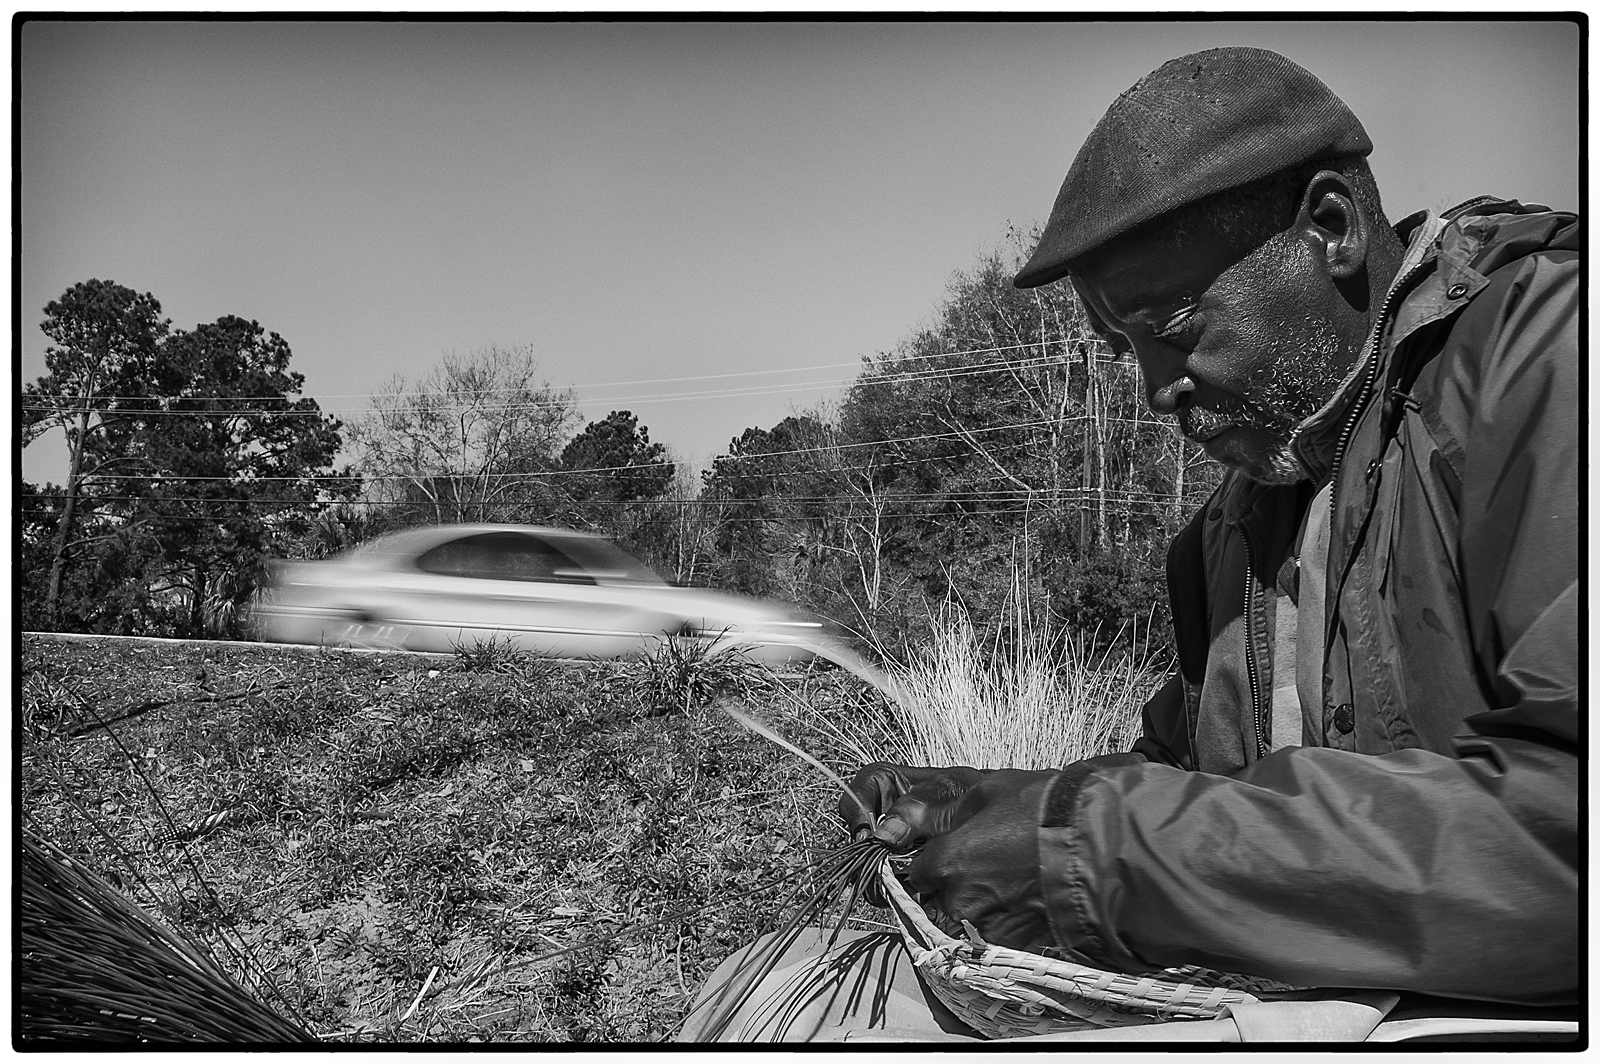 Eugene Gilliard, 60, sews sweetgrass baskets along Highway 17 in Mt. Pleasant. He lives in an area known as 7 mile. Gilliard and his family have been selling baskets on the side of the road since 1947.